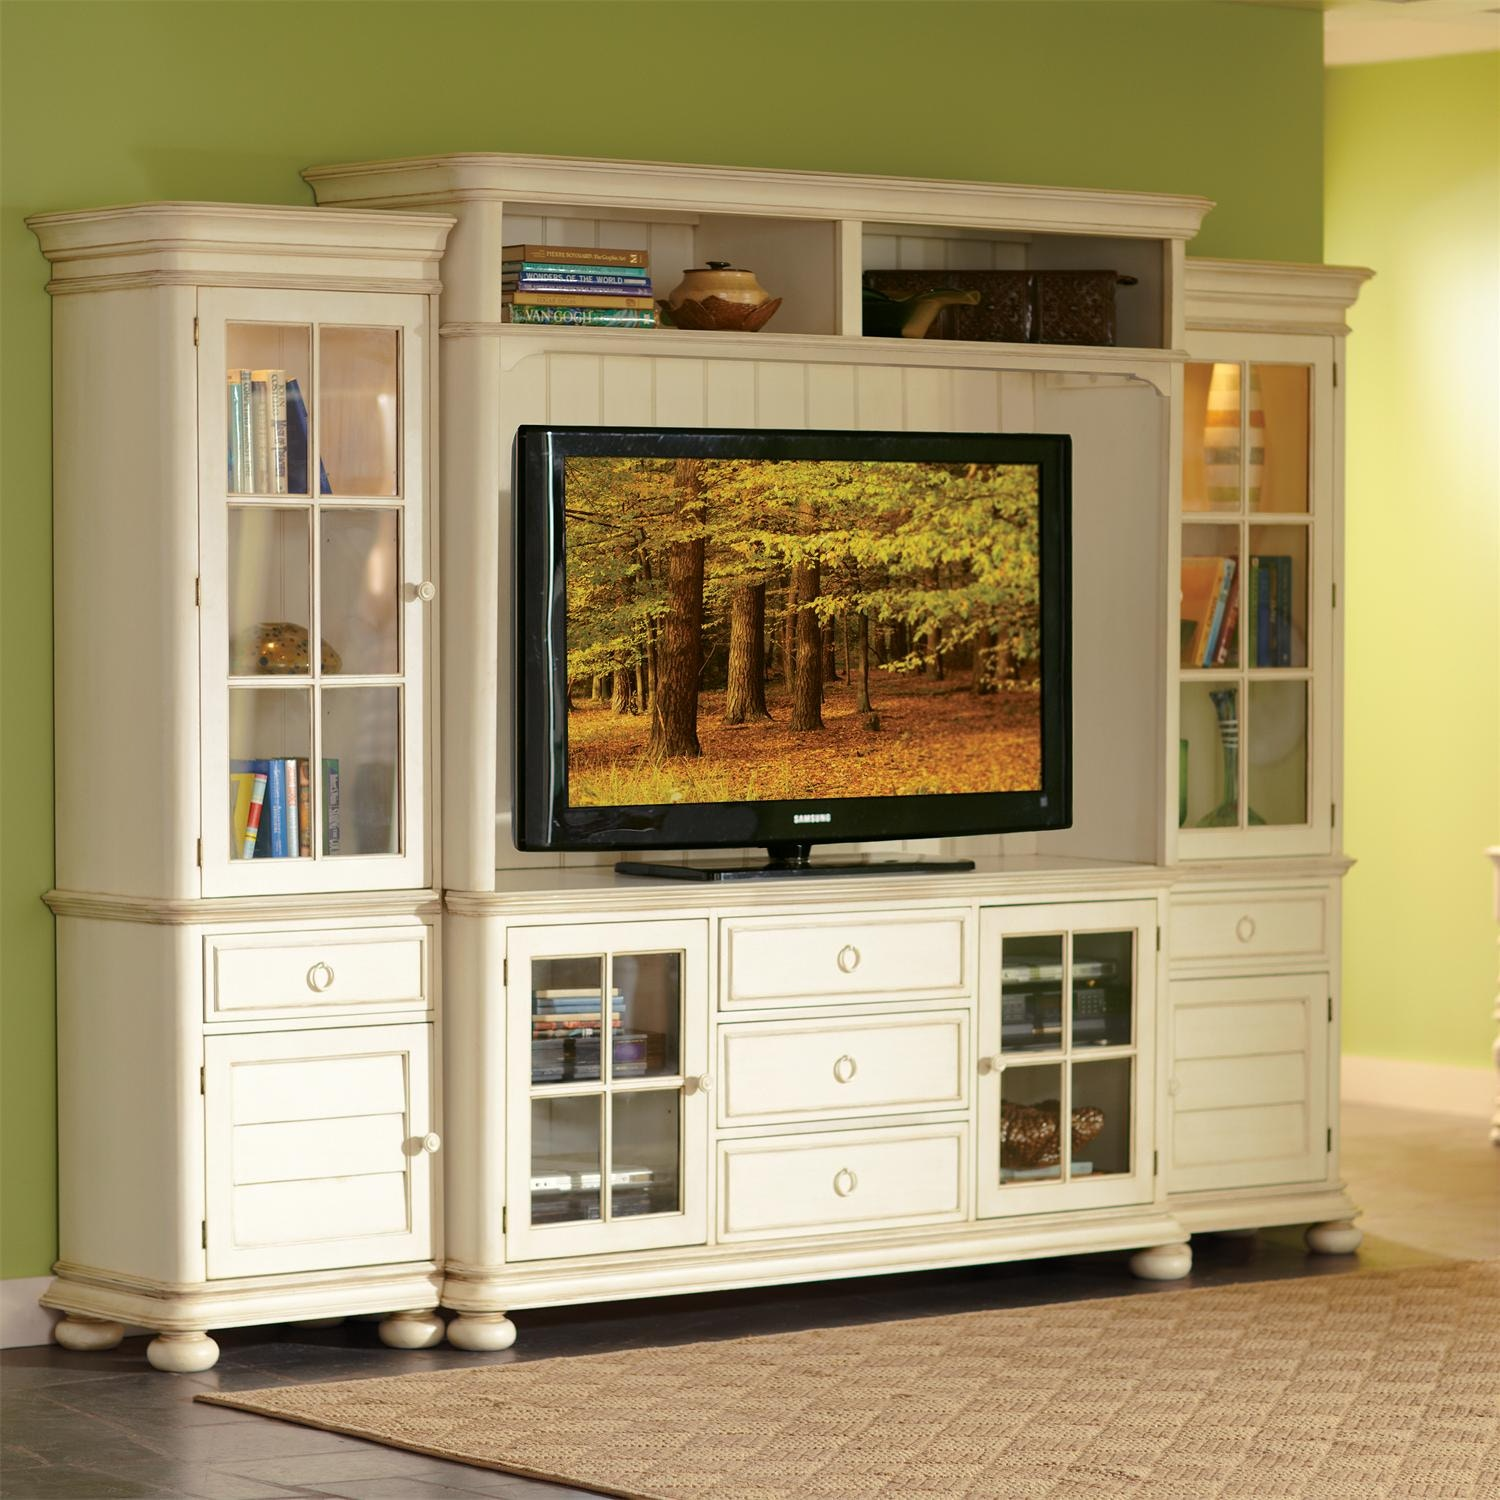 Design With Entertainment Centers Near Foley